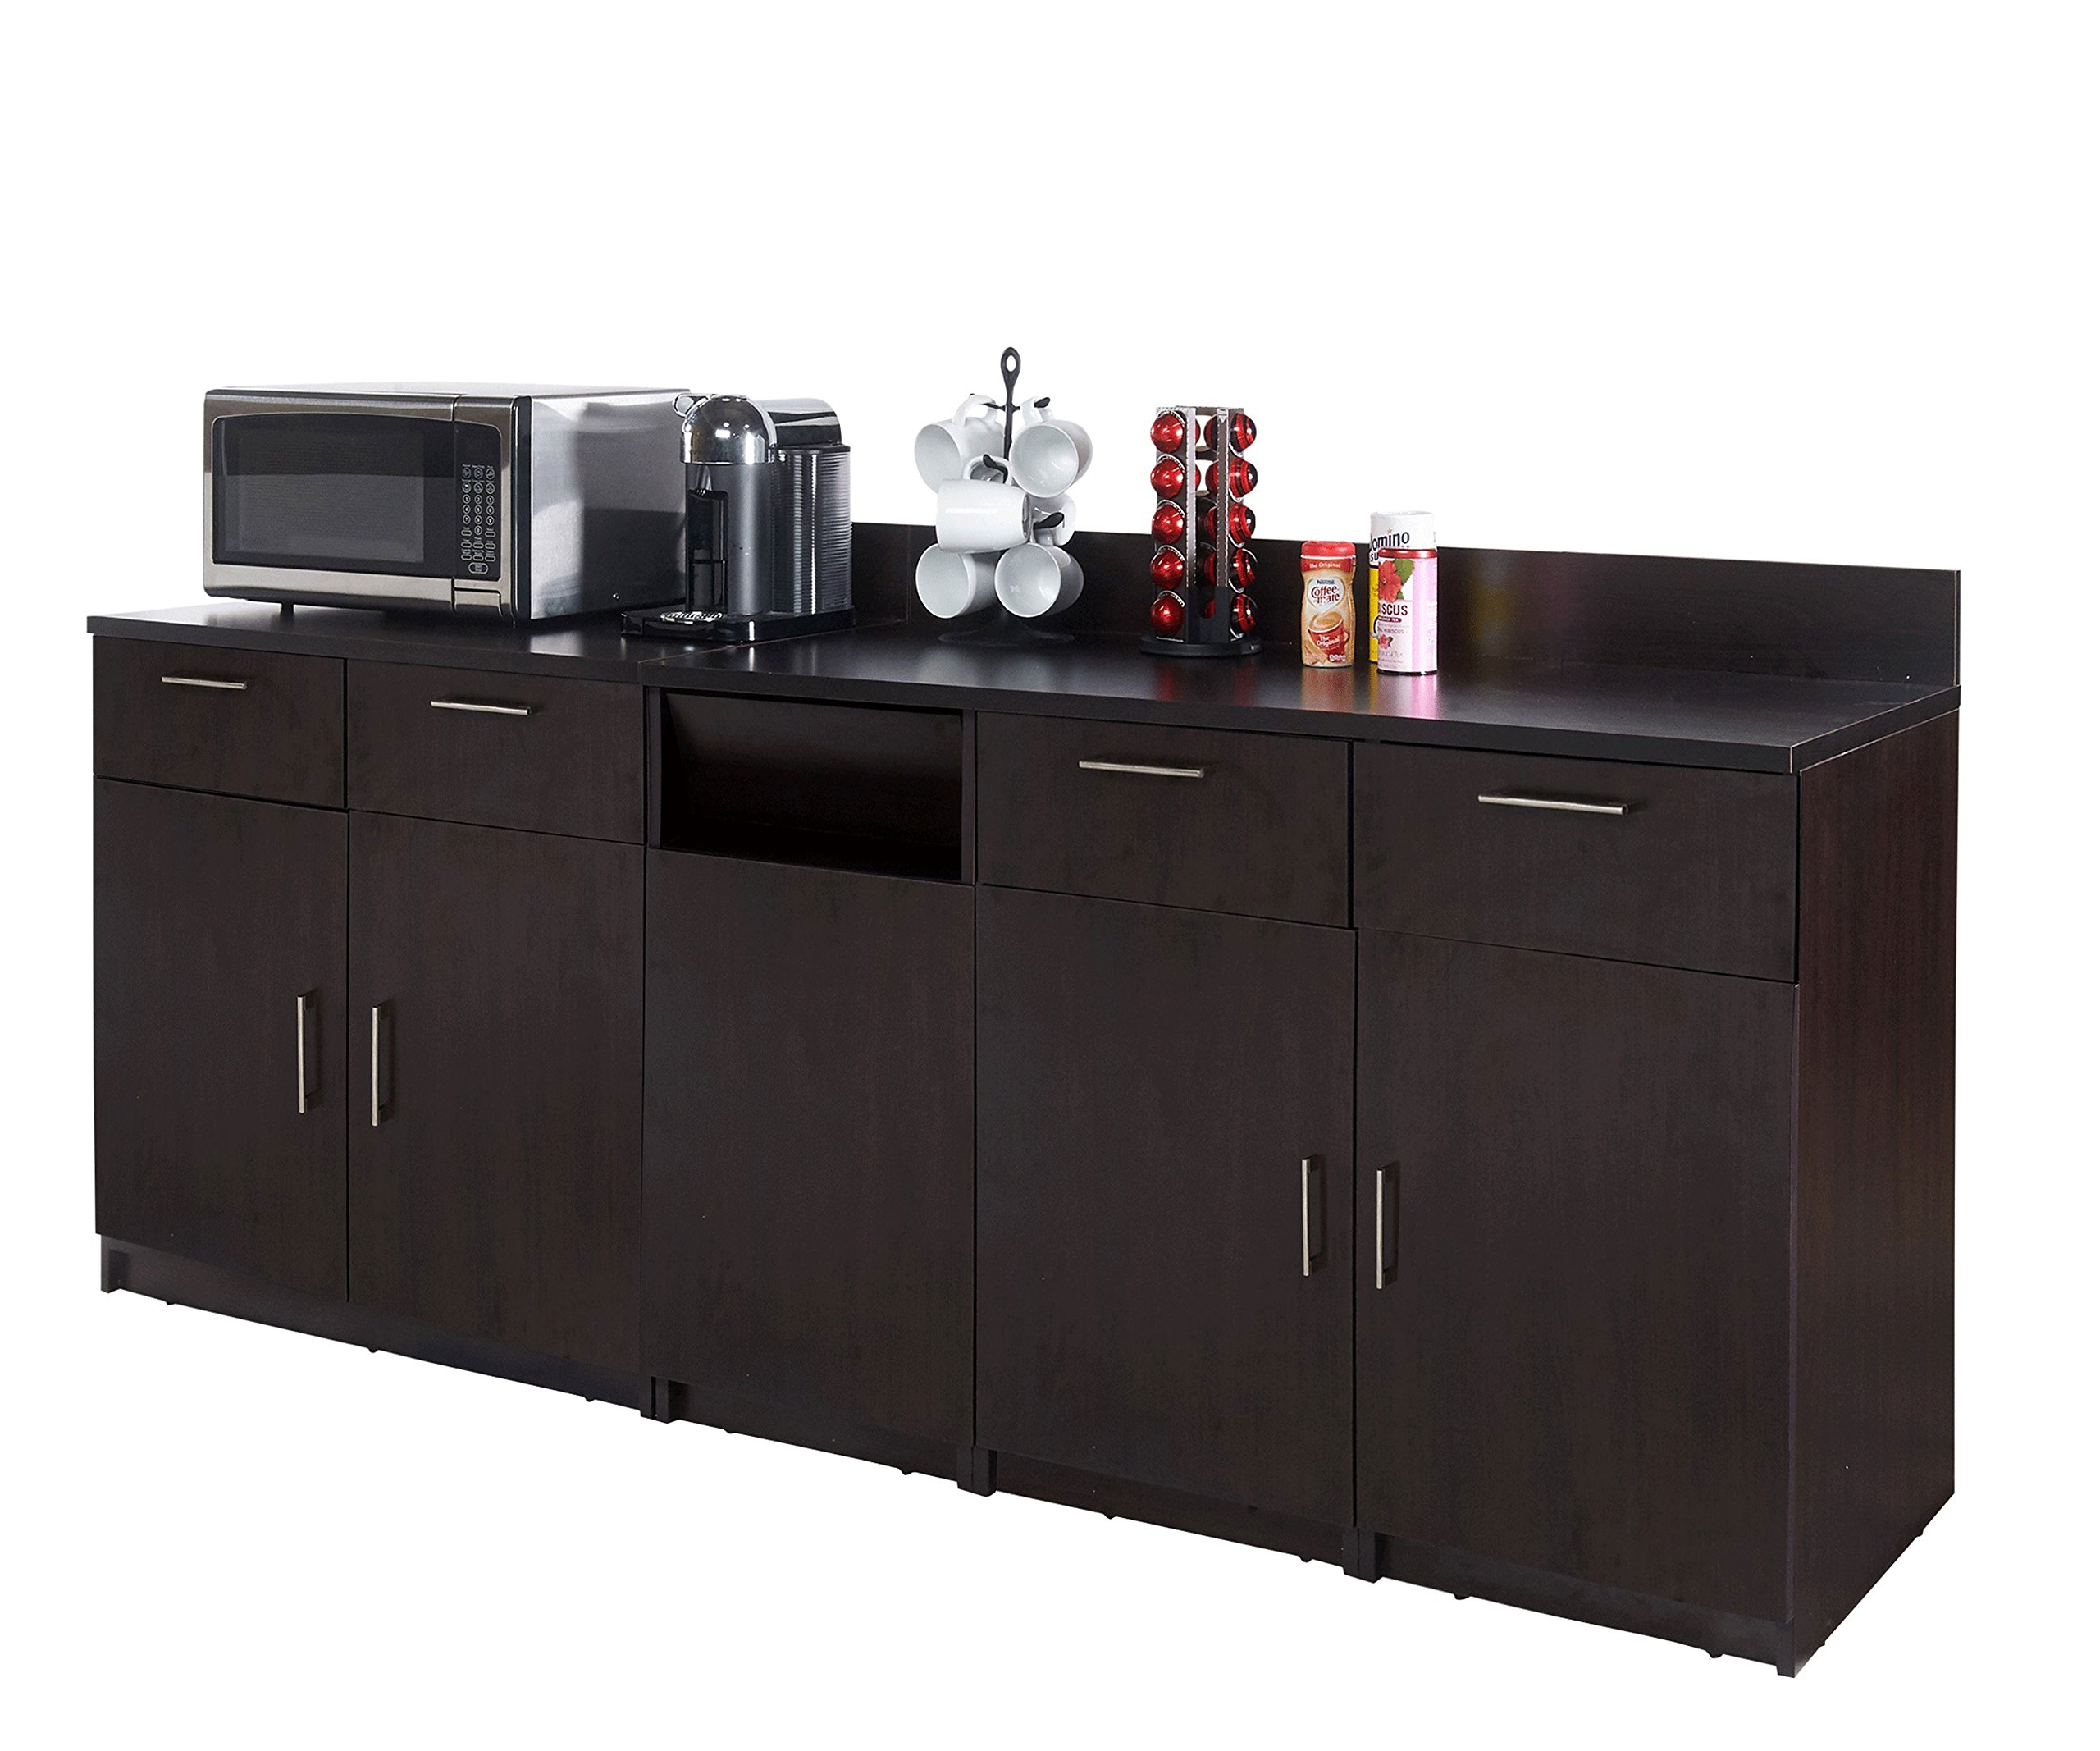 Coffee Break Lunch Room Furniture Fully Assembled''Ready-to-Use'' 3pc Group BREAKTIME Model 2724 - Elegant Espresso Color Instantly Create Your New Coffee Break Lunch Room!!!